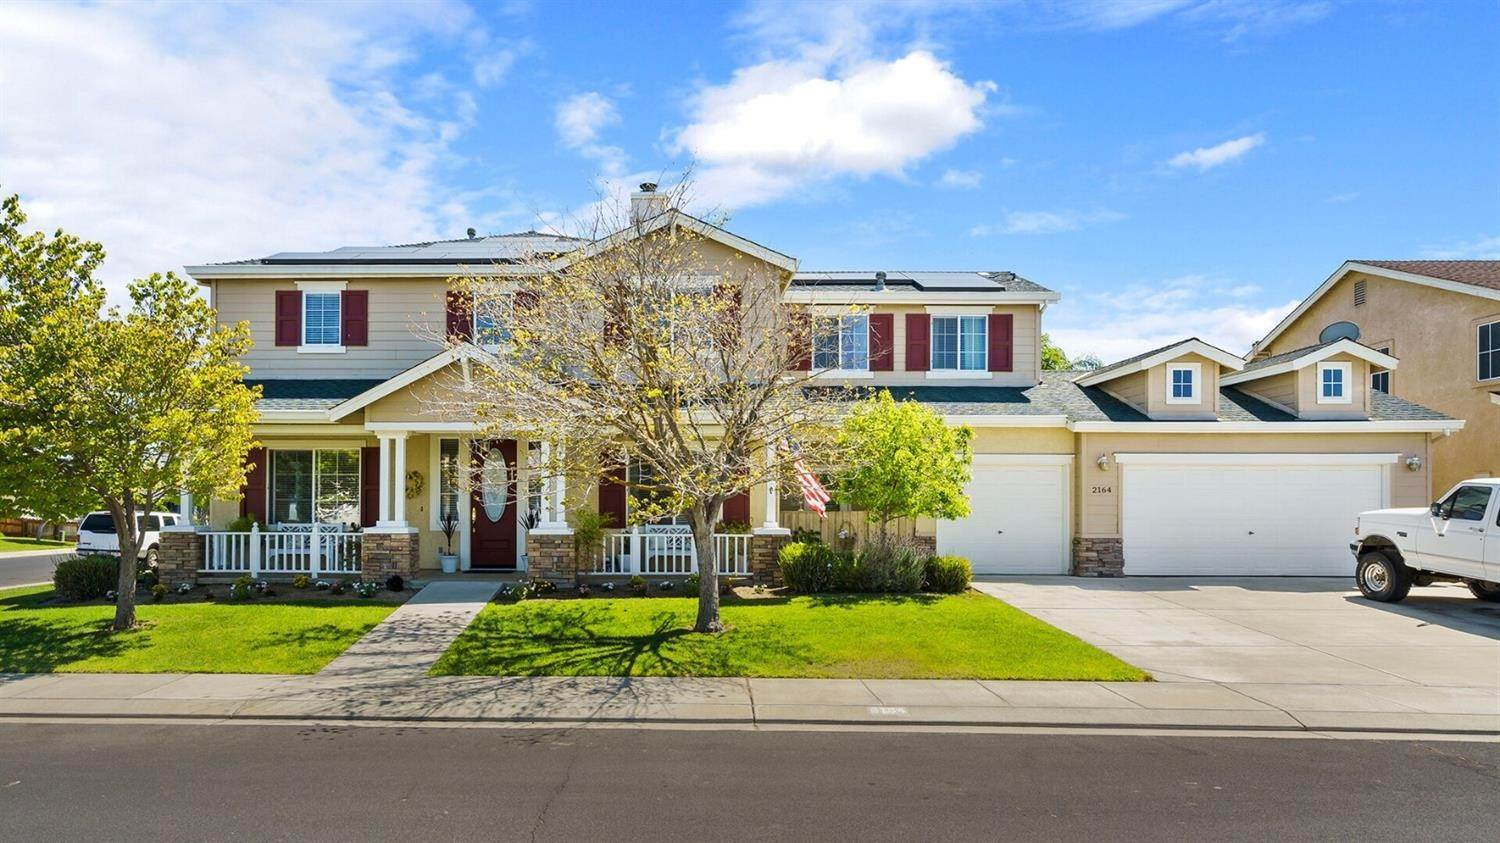 Single Family Homes for Active at 2164 Ivory Lace Avenue Manteca, California 95337 United States